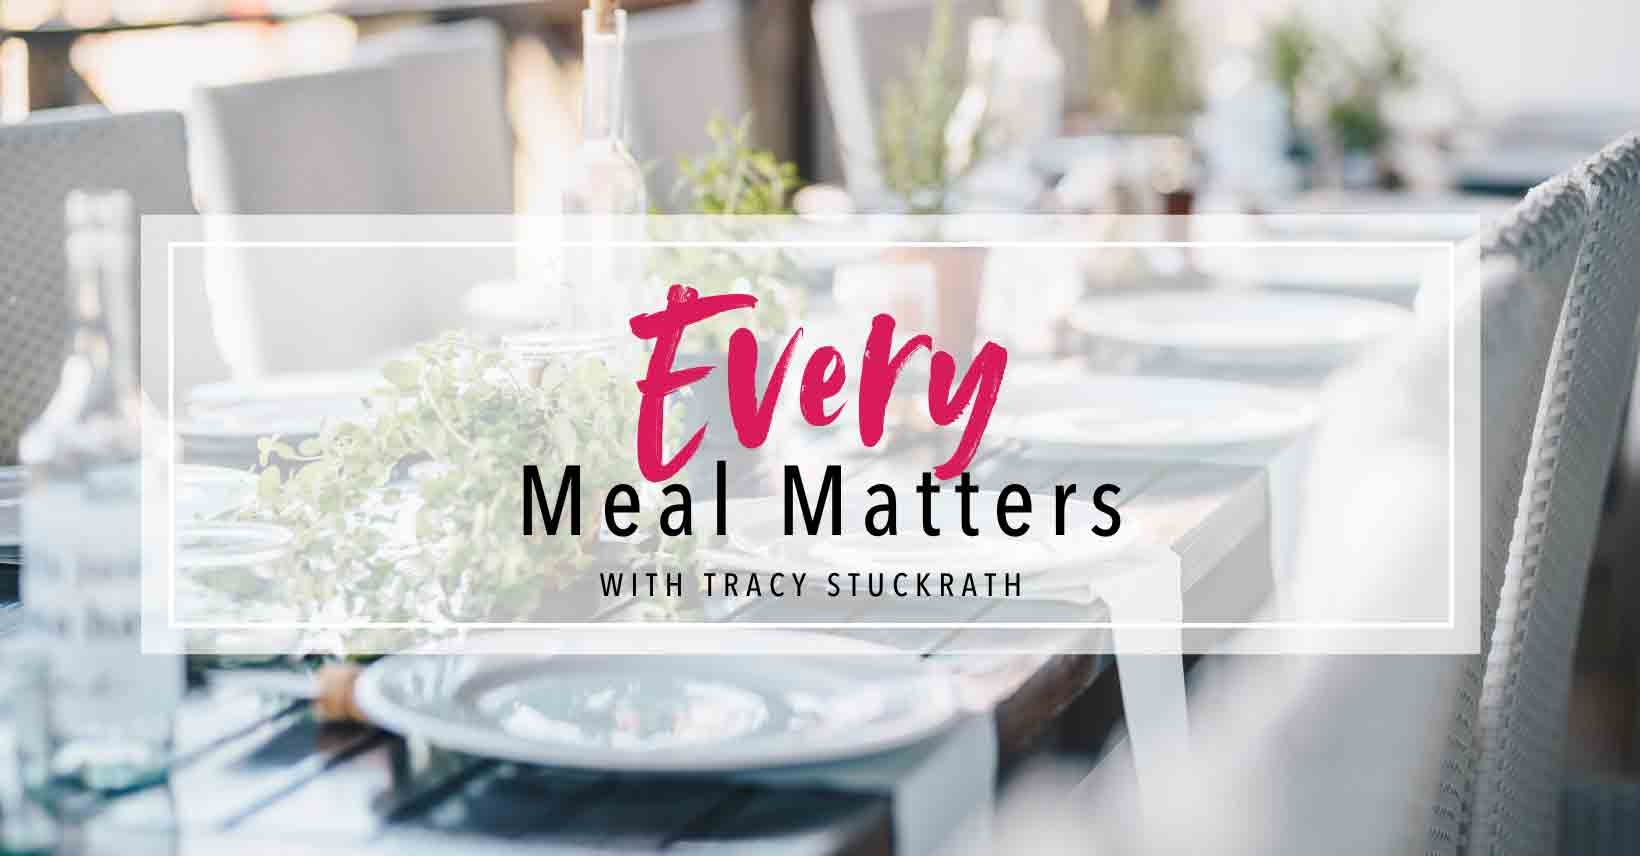 Every Meal Matters text on top of a picture of a long wooden table with white plates and chairs